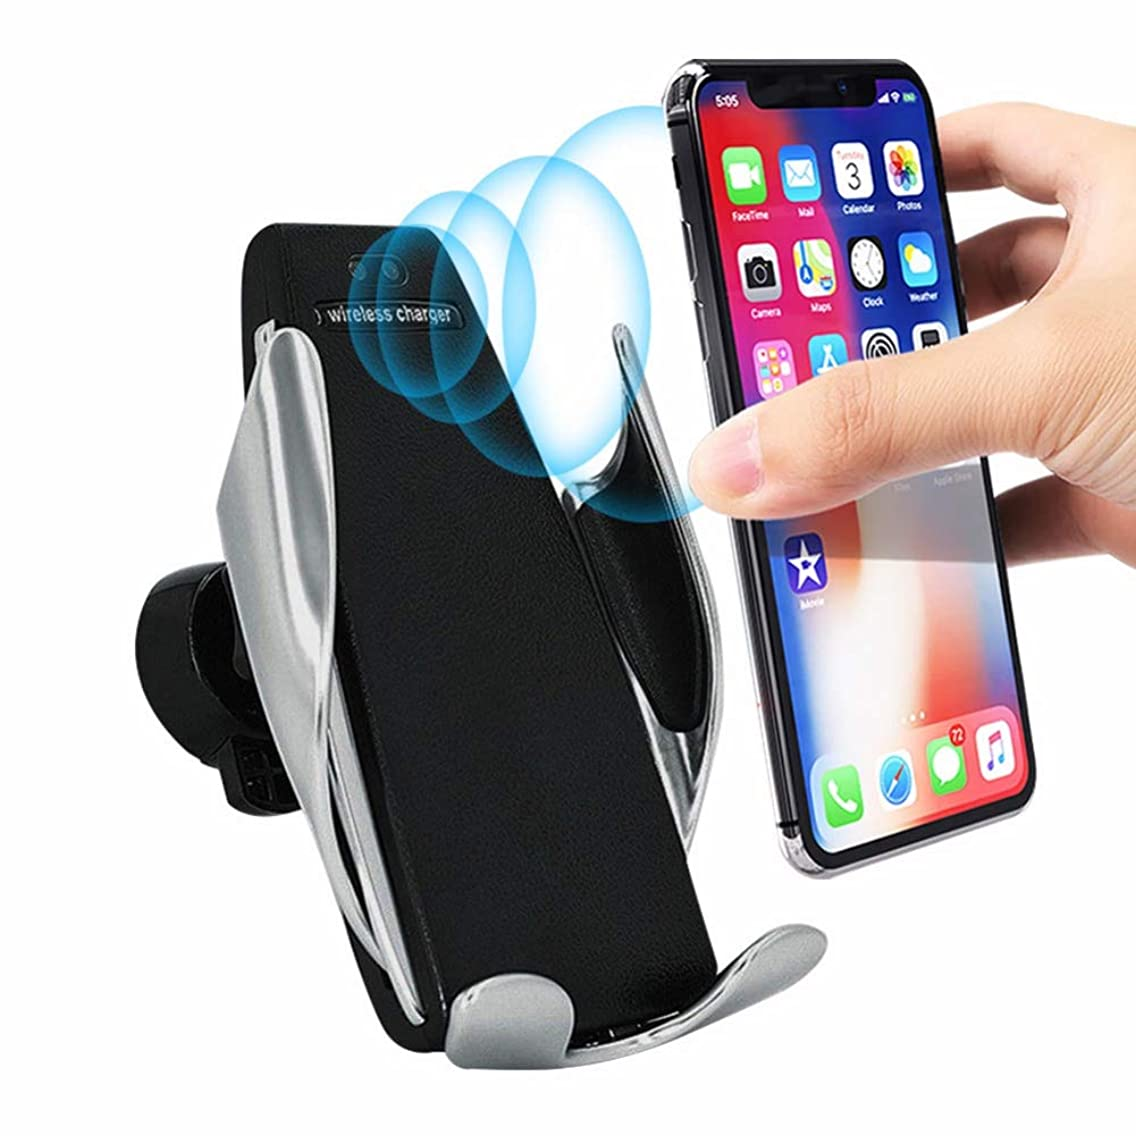 Wireless Fast Car Charger Mount with Infrared Sensor, 7.5W / 10W Auto-Clamping Dashboard & Vent, One-Touch Phone Holder Compatible iPhone Xs MAX/XR/XS/X/8/8 Plus, Samsung Galaxy Note 9/S9/S9 Plus/S8